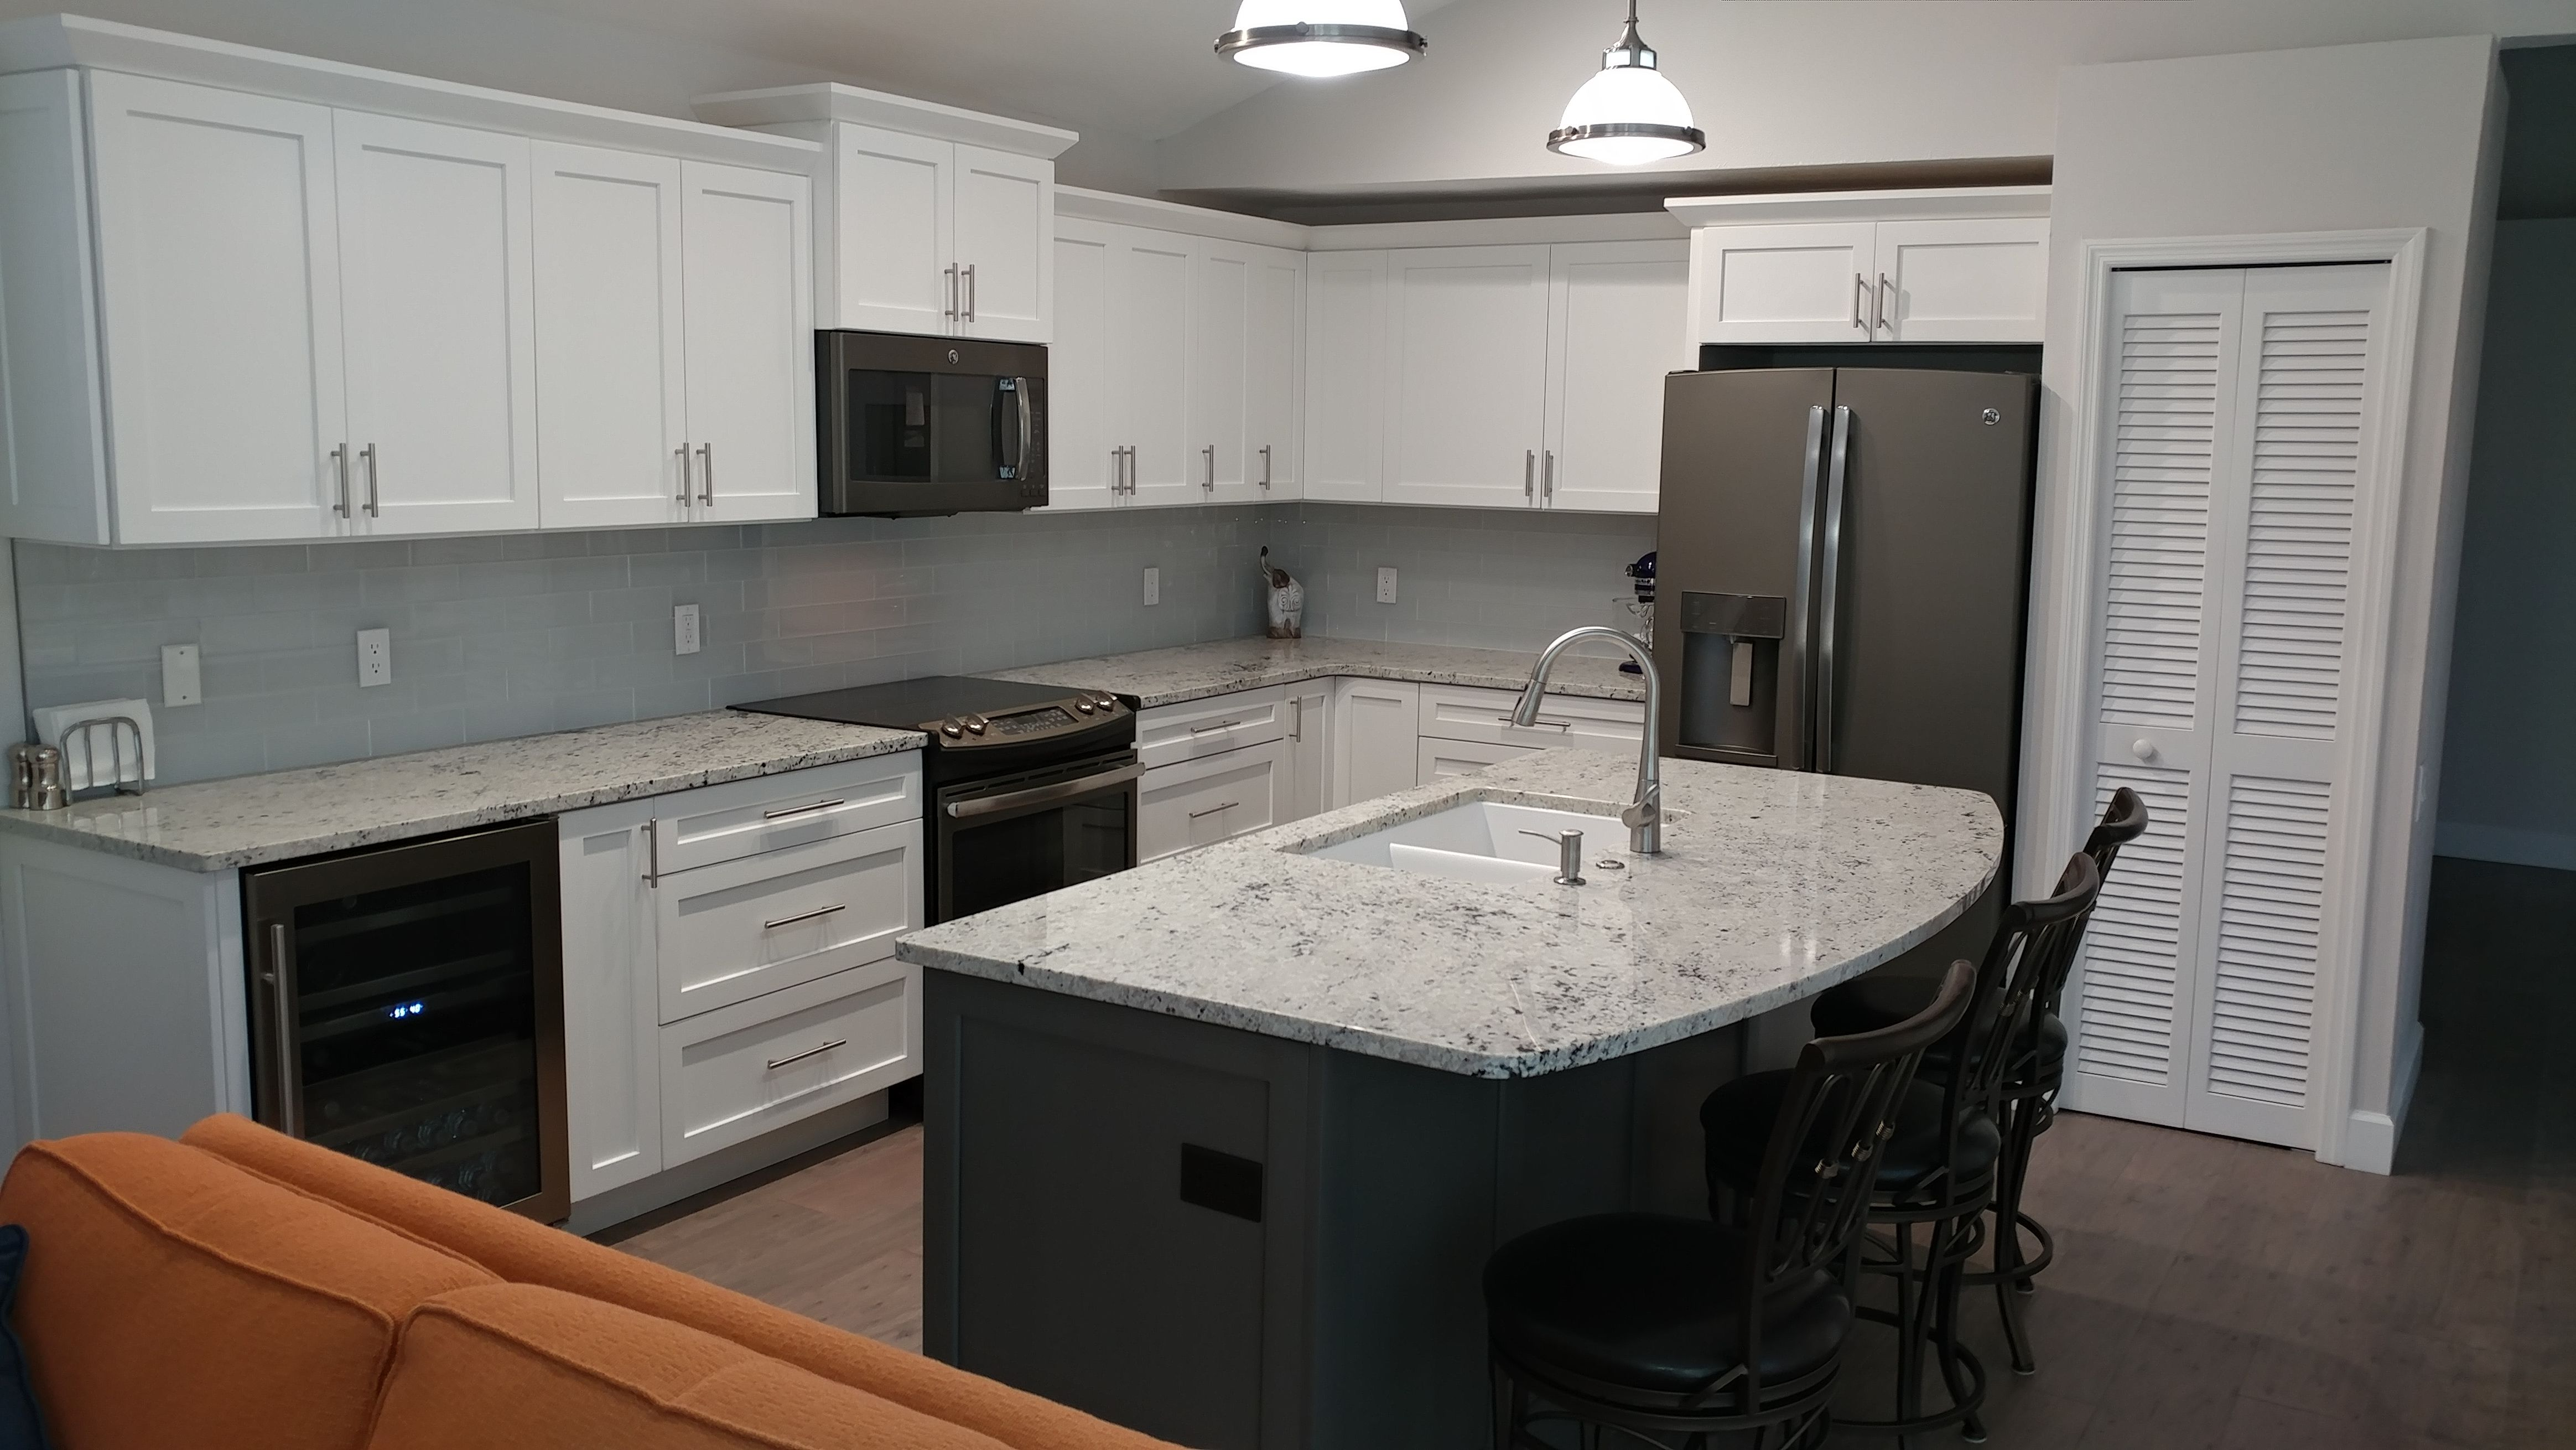 Slate Kitchen Appliances Chicago Faucets White Shaker Cabinets With Creekstone Island And Ge